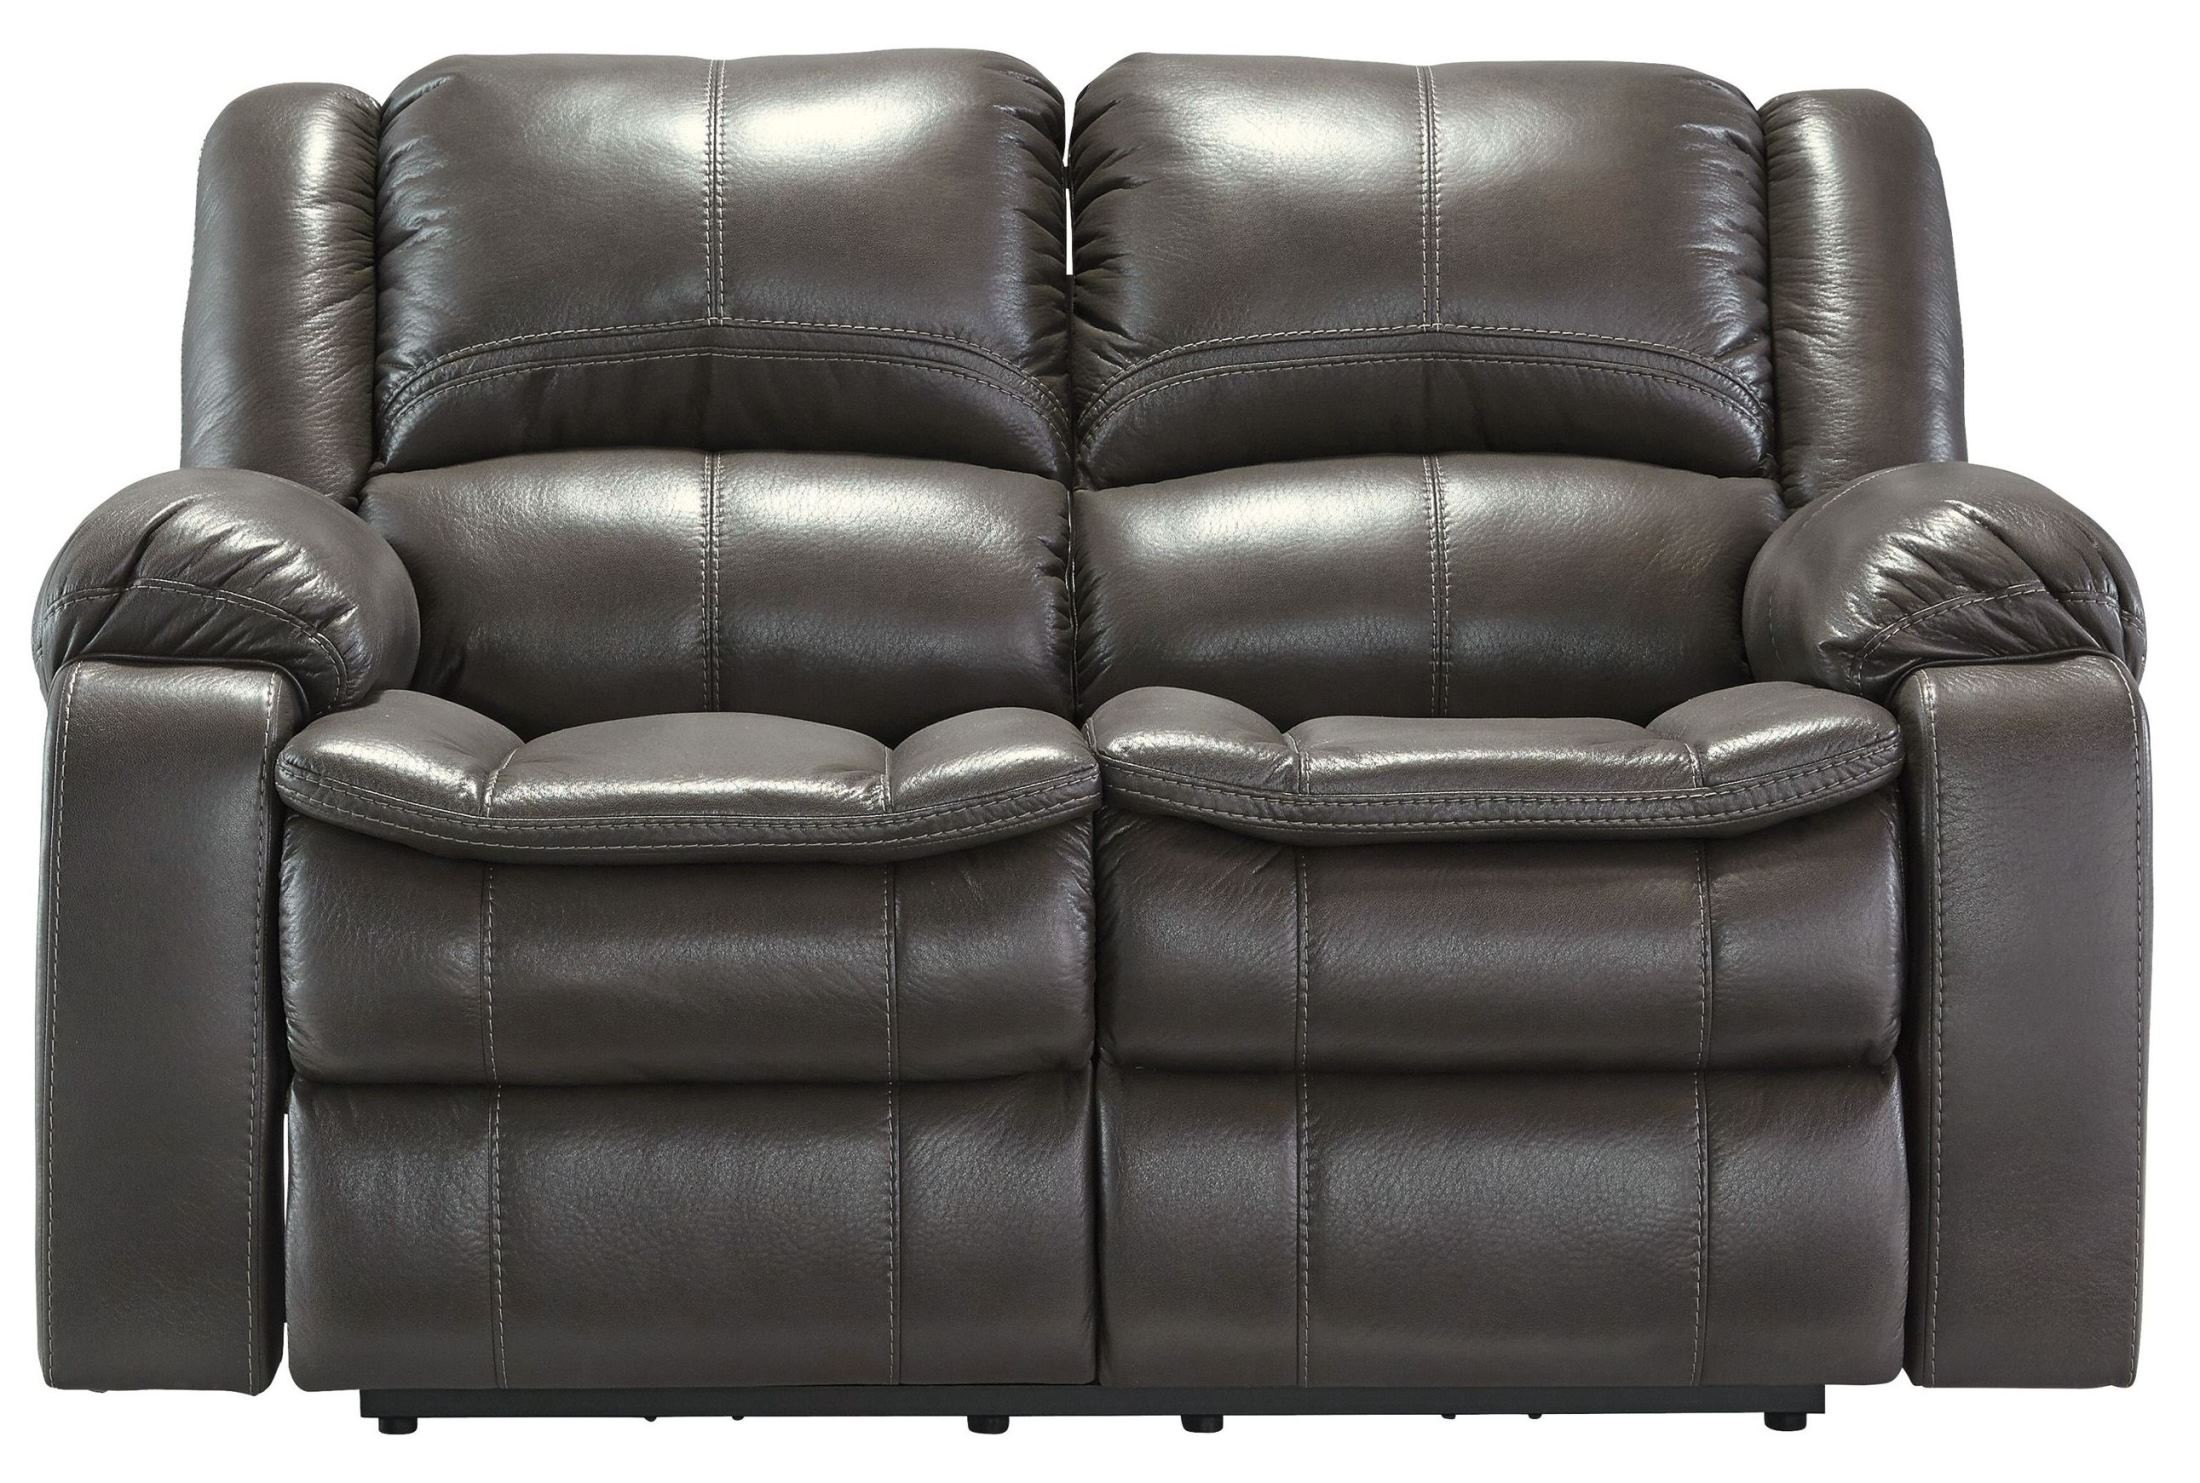 Long Knight Gray Reclining Loveseat From Ashley 8890686 Coleman Furniture